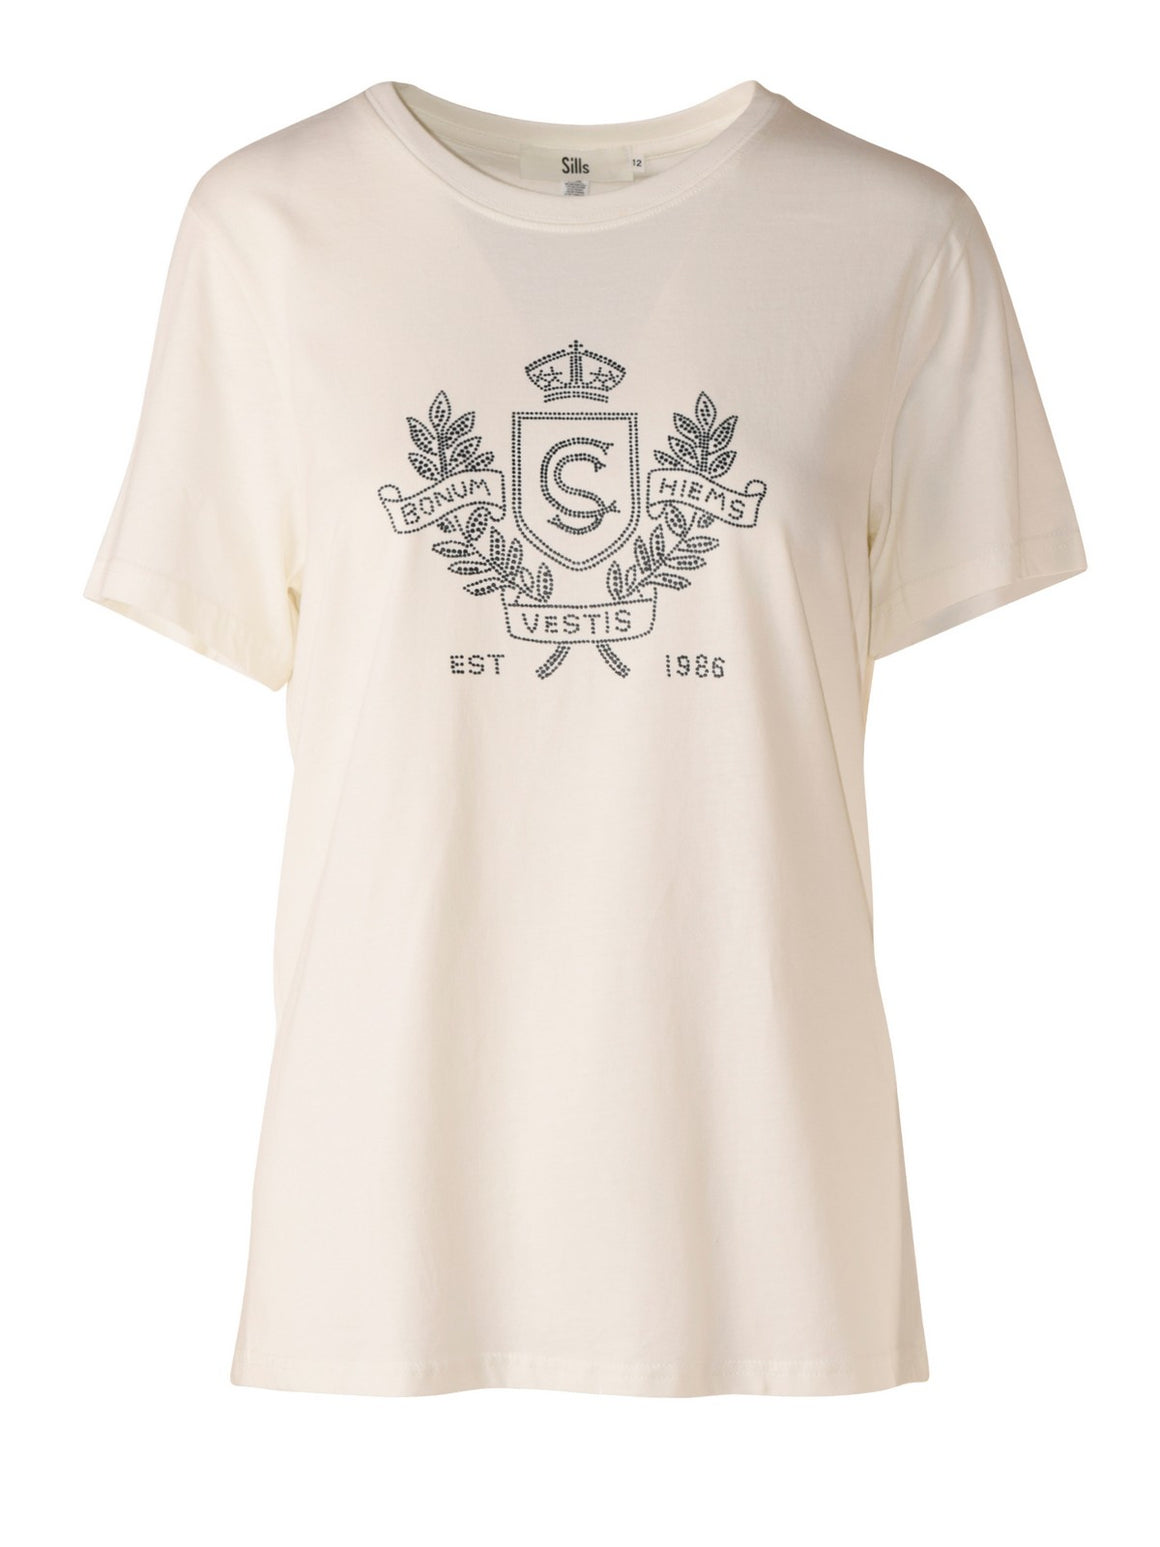 Sills Shield Tee - Ivory/Navy